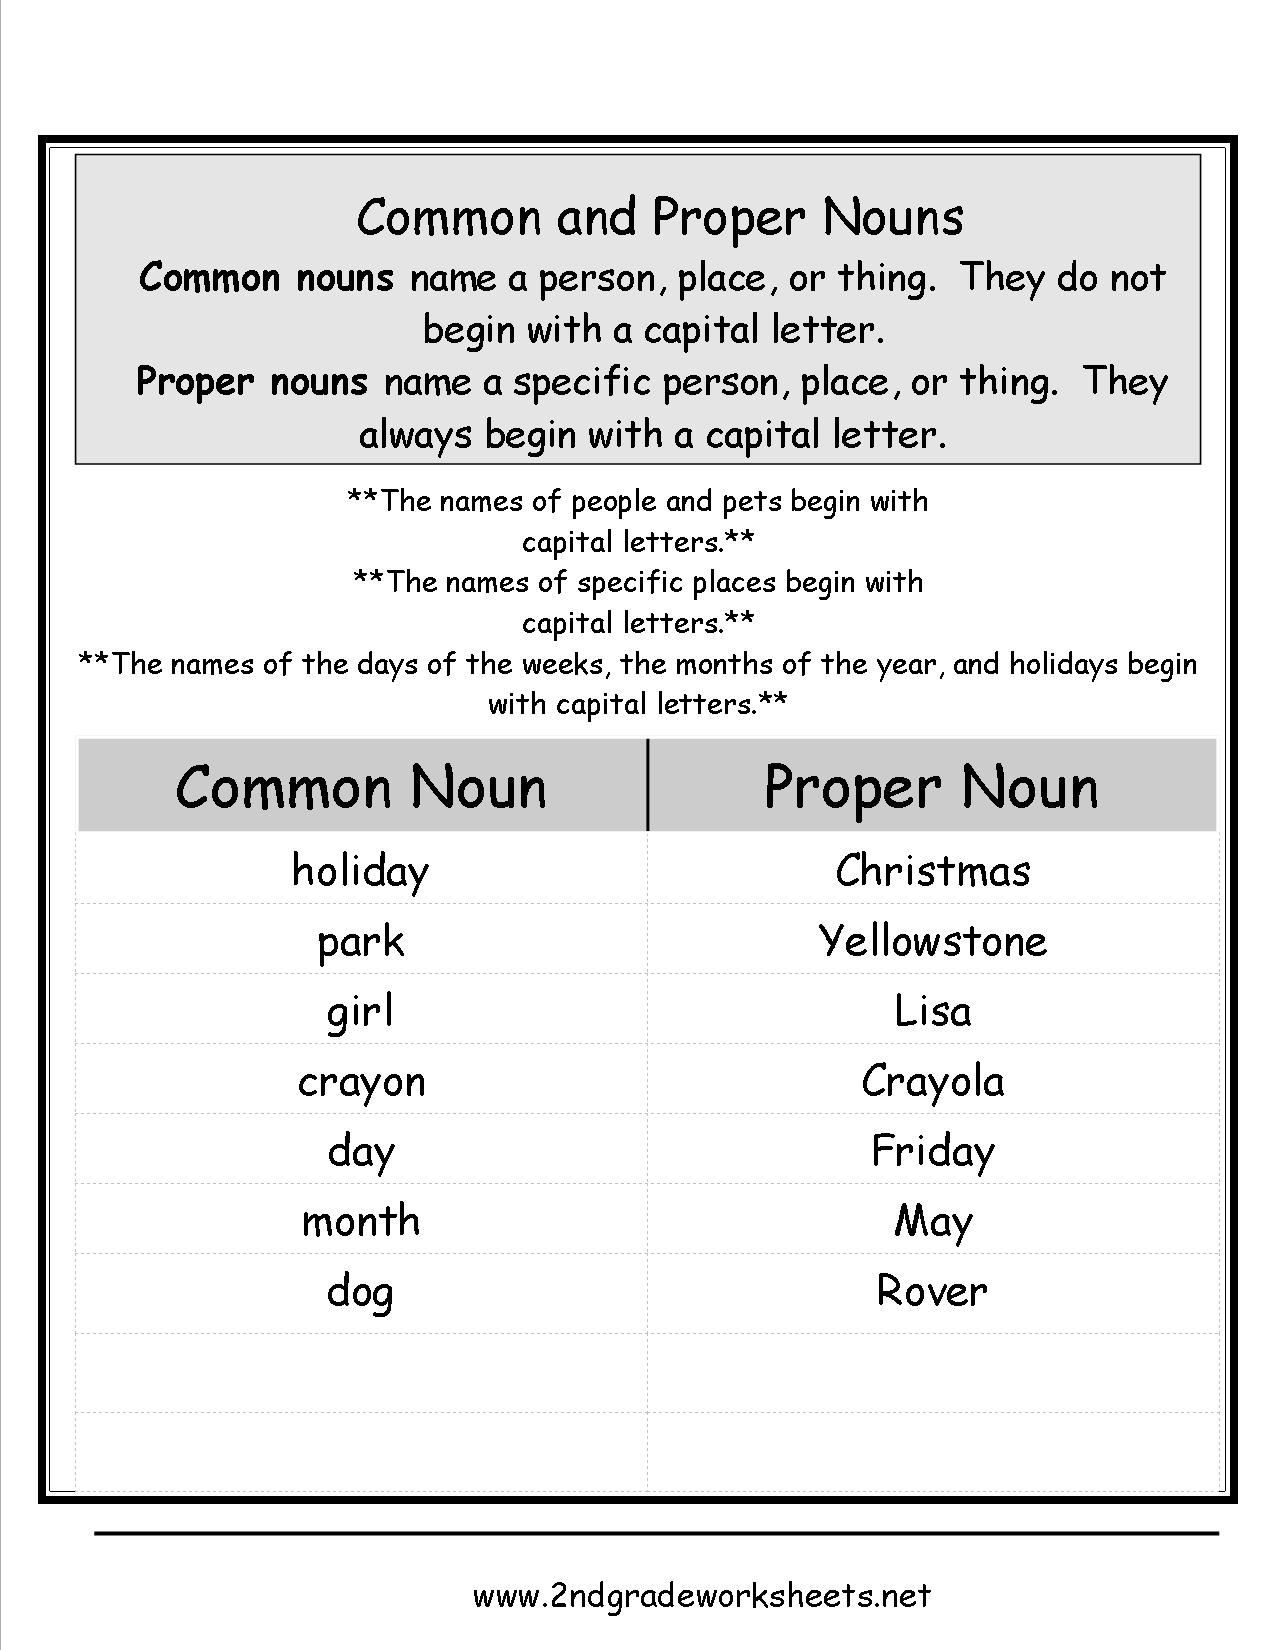 Pronoun Worksheets 5th Grade Proper Nouns Worksheet